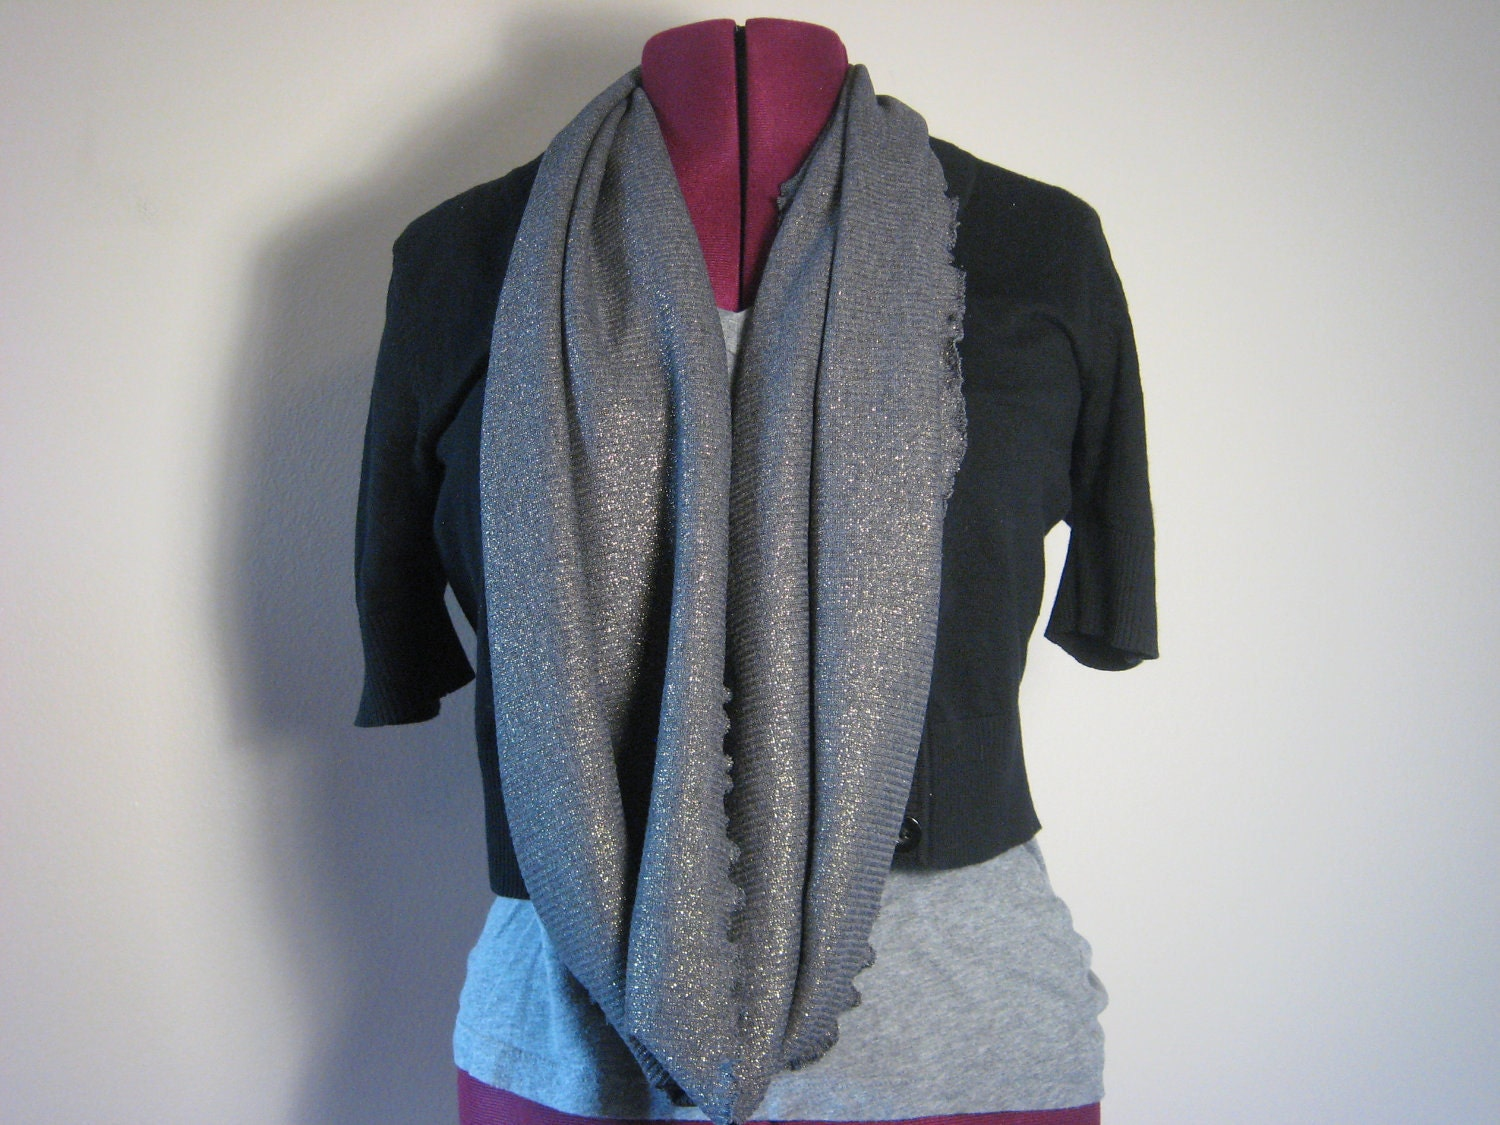 Infinity scarf in charcoal sparkle fashion